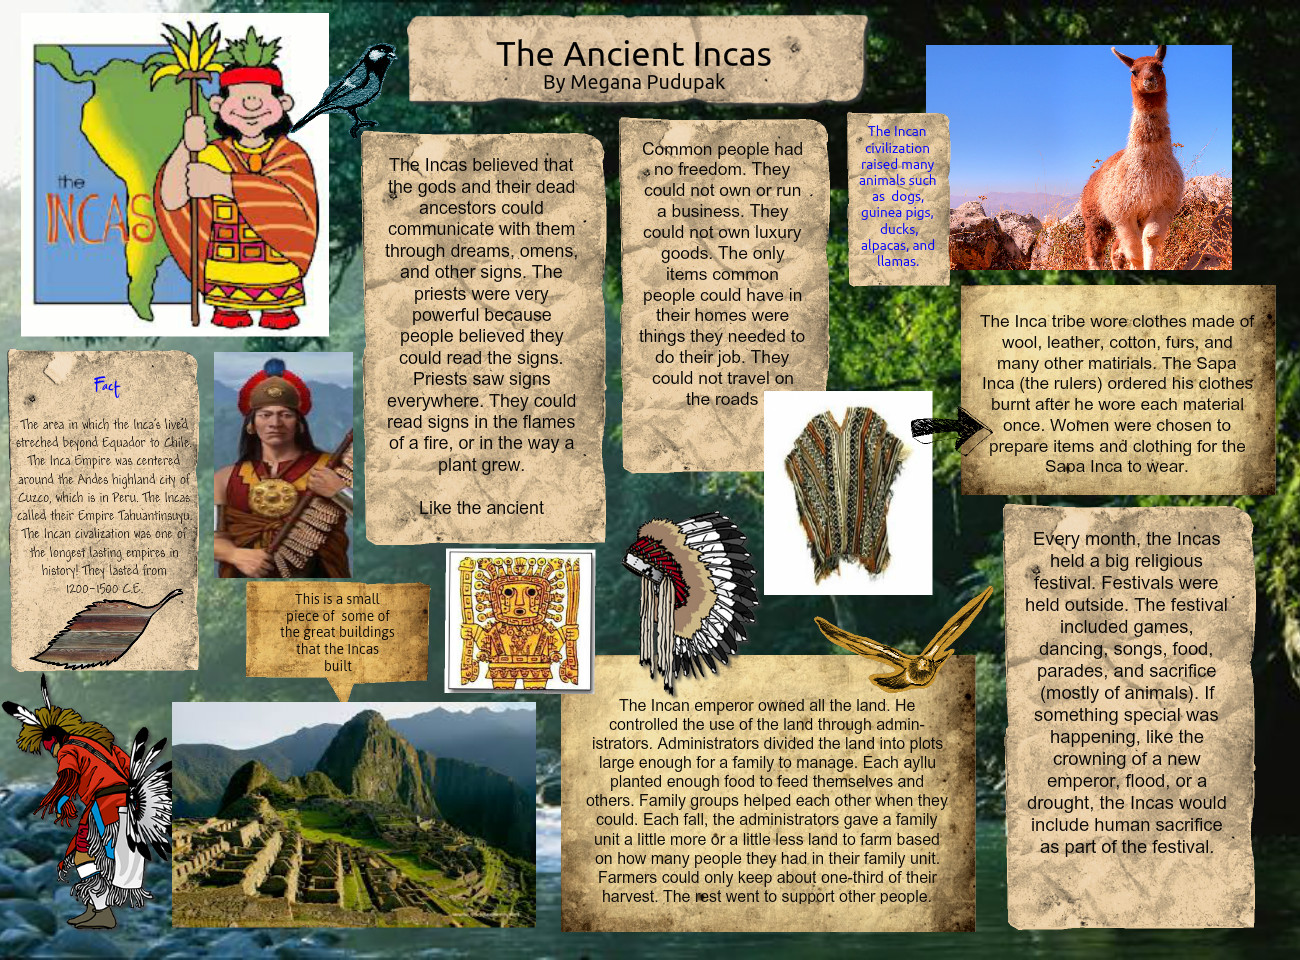 The Ancient Inca